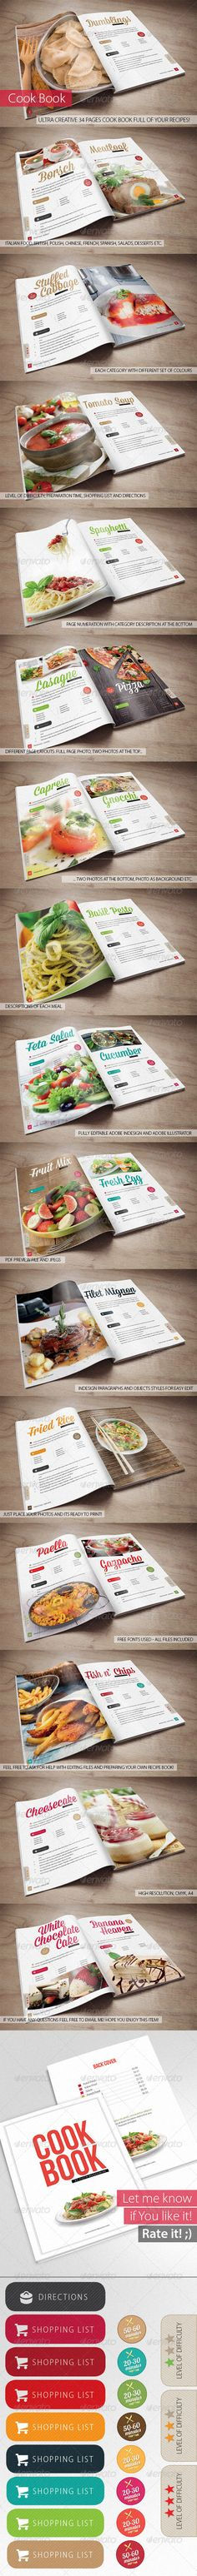 Cook Book - Your Recipes #GraphicRiver 34 Pages creative cook book stuffed with Your recipes and dish photos!